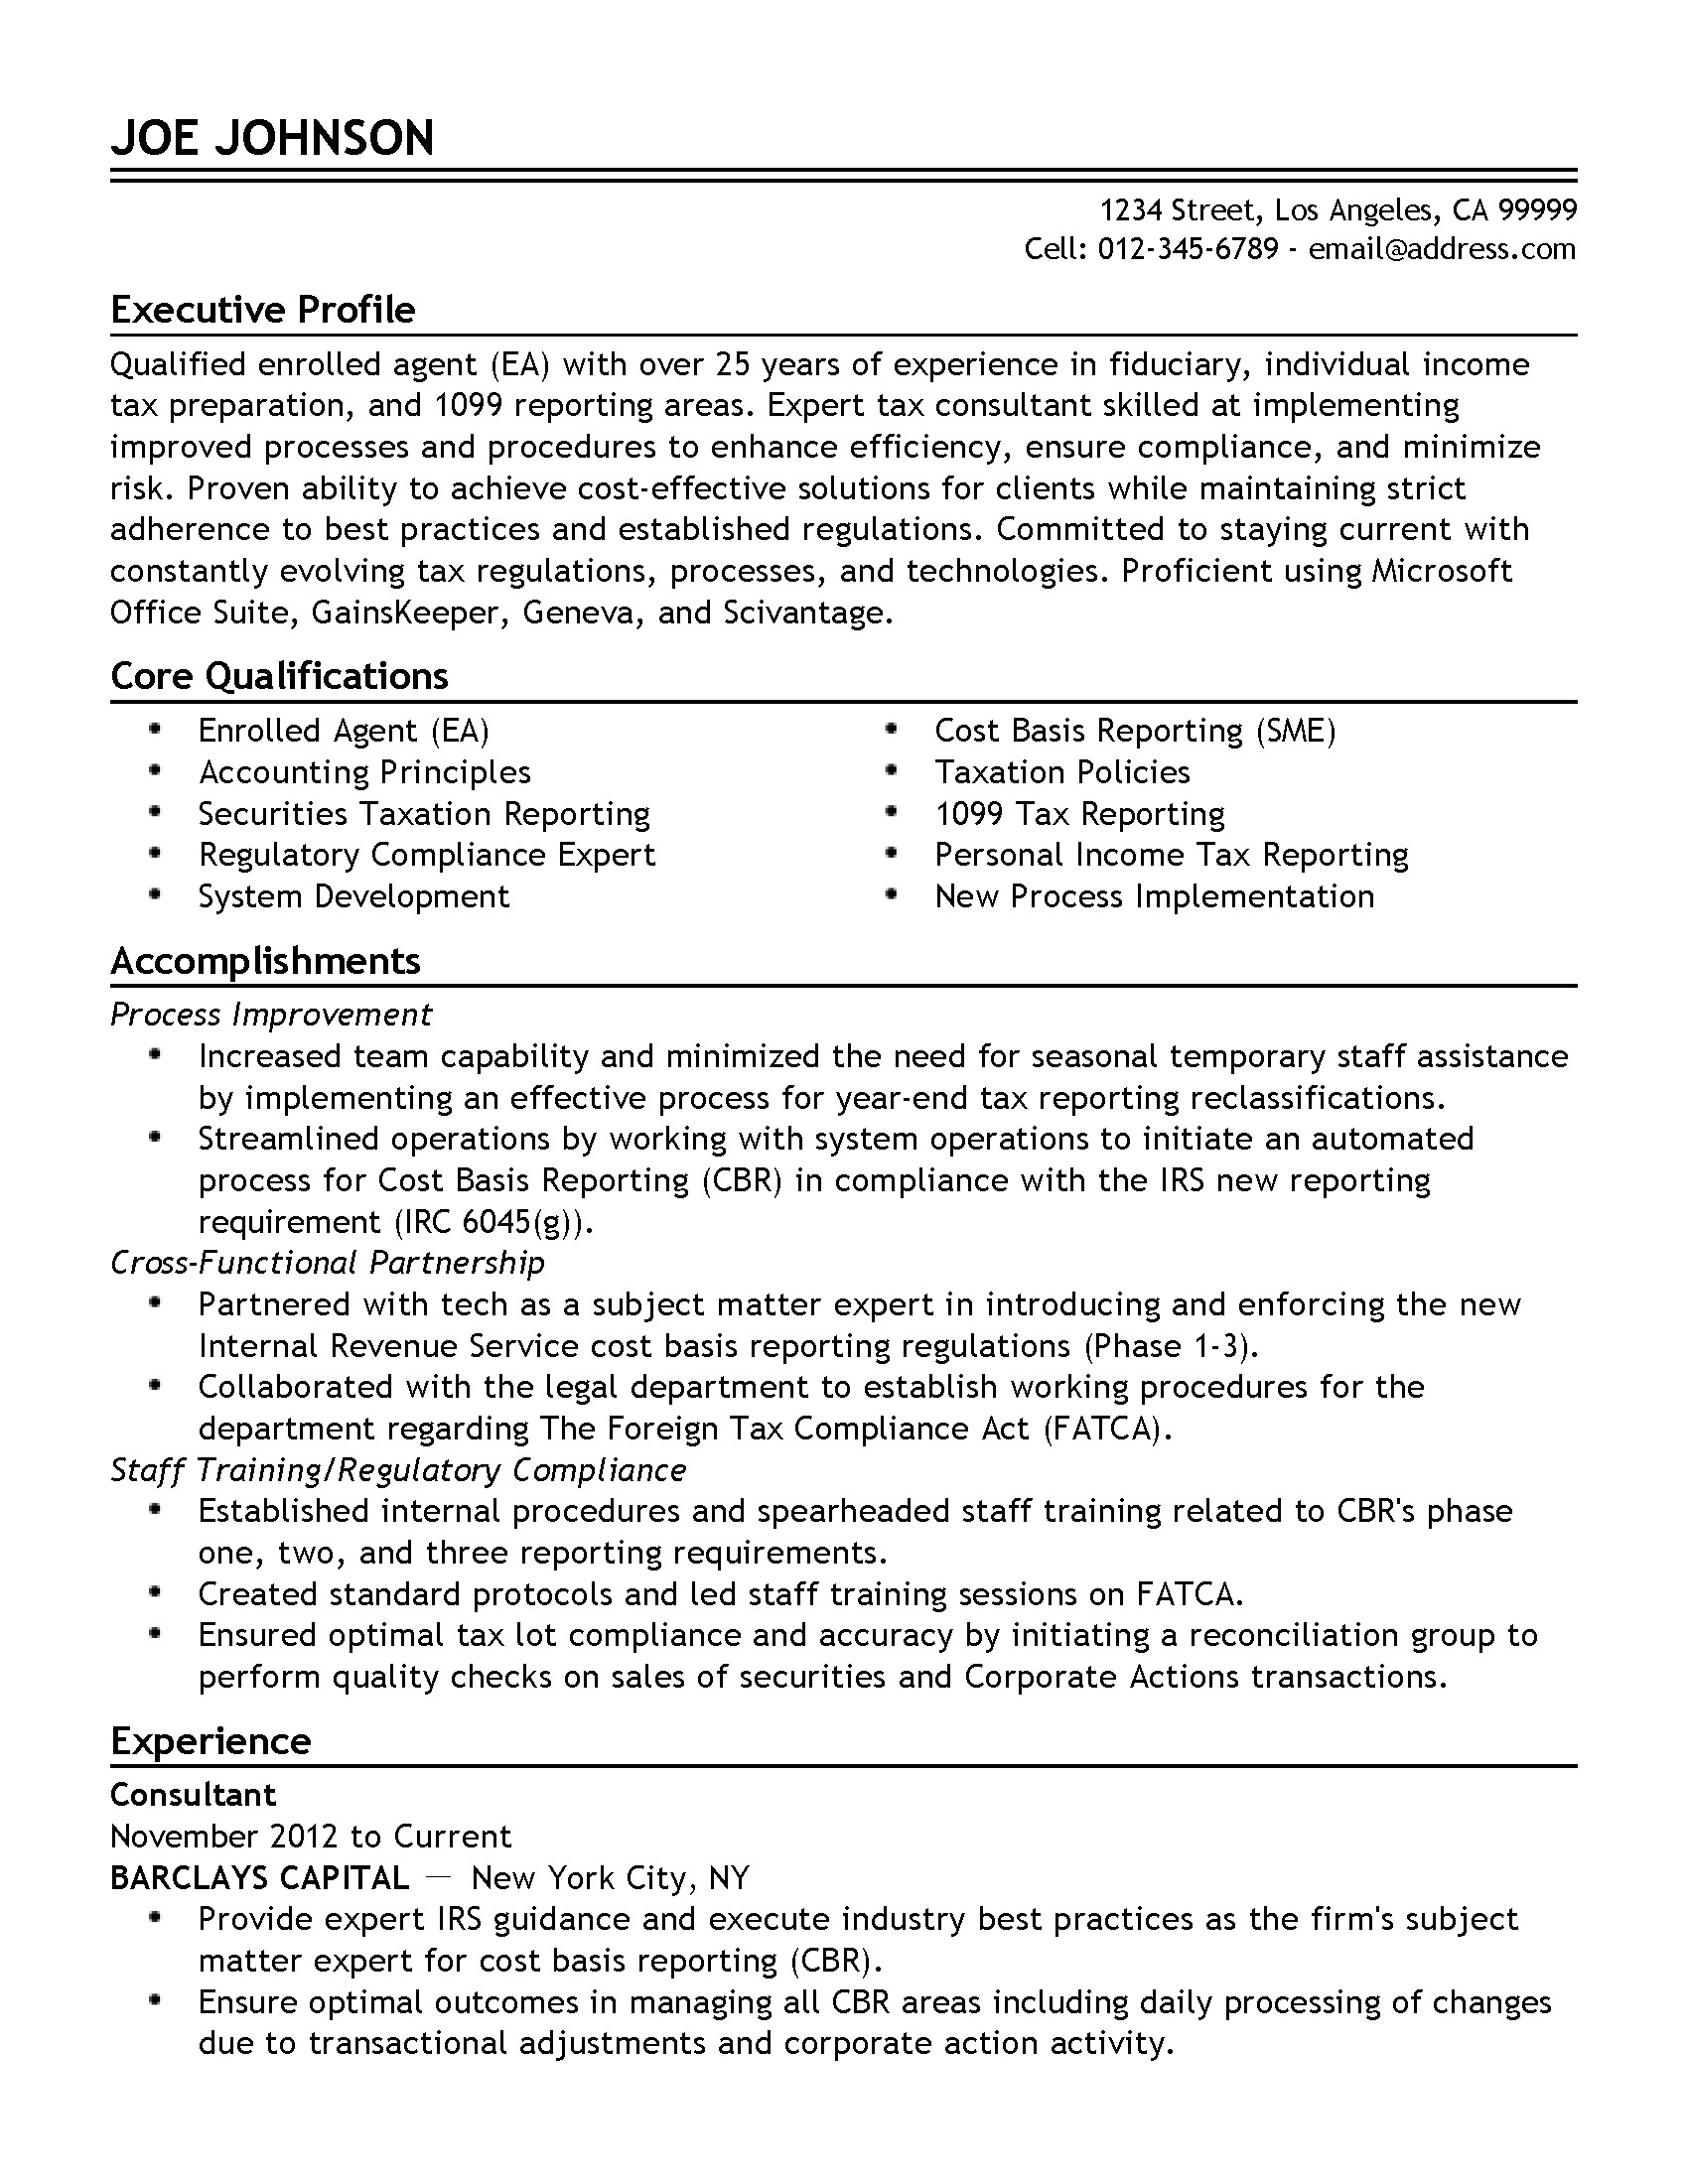 Enrolled Agent Resume Sample Professional Enrolled Agent Templates to Showcase Your